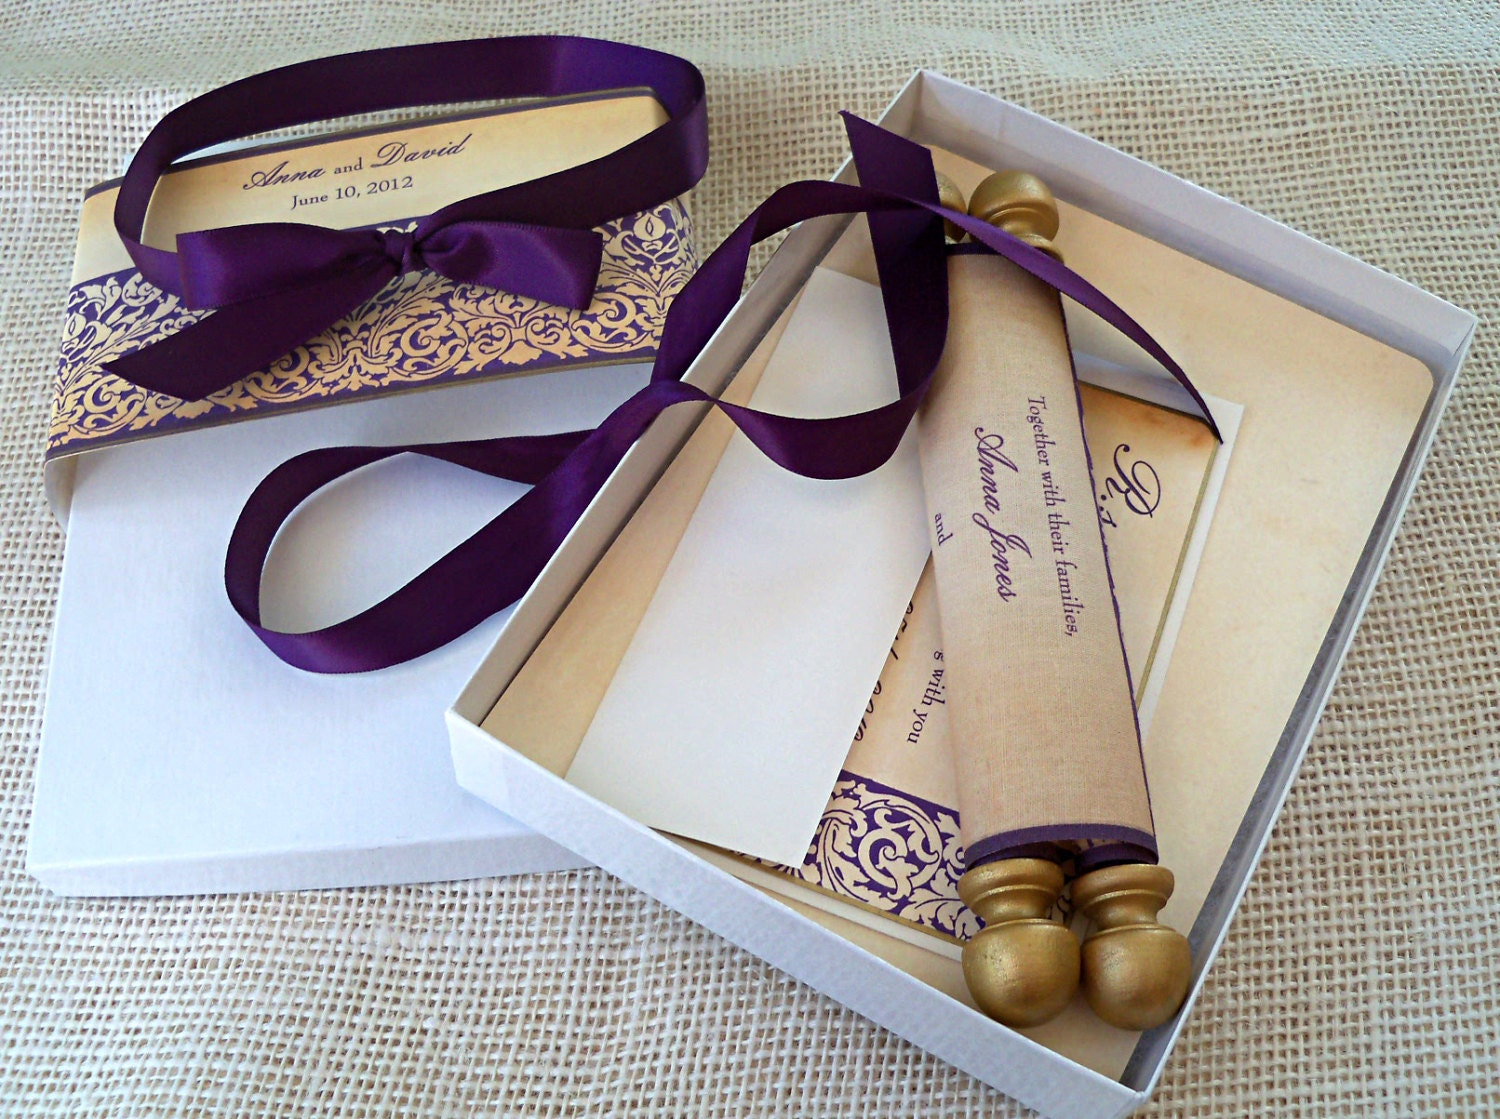 Medieval Wedding Invitation Wording: Medieval Wedding Invitation Suite In Aubergine And Gold 25